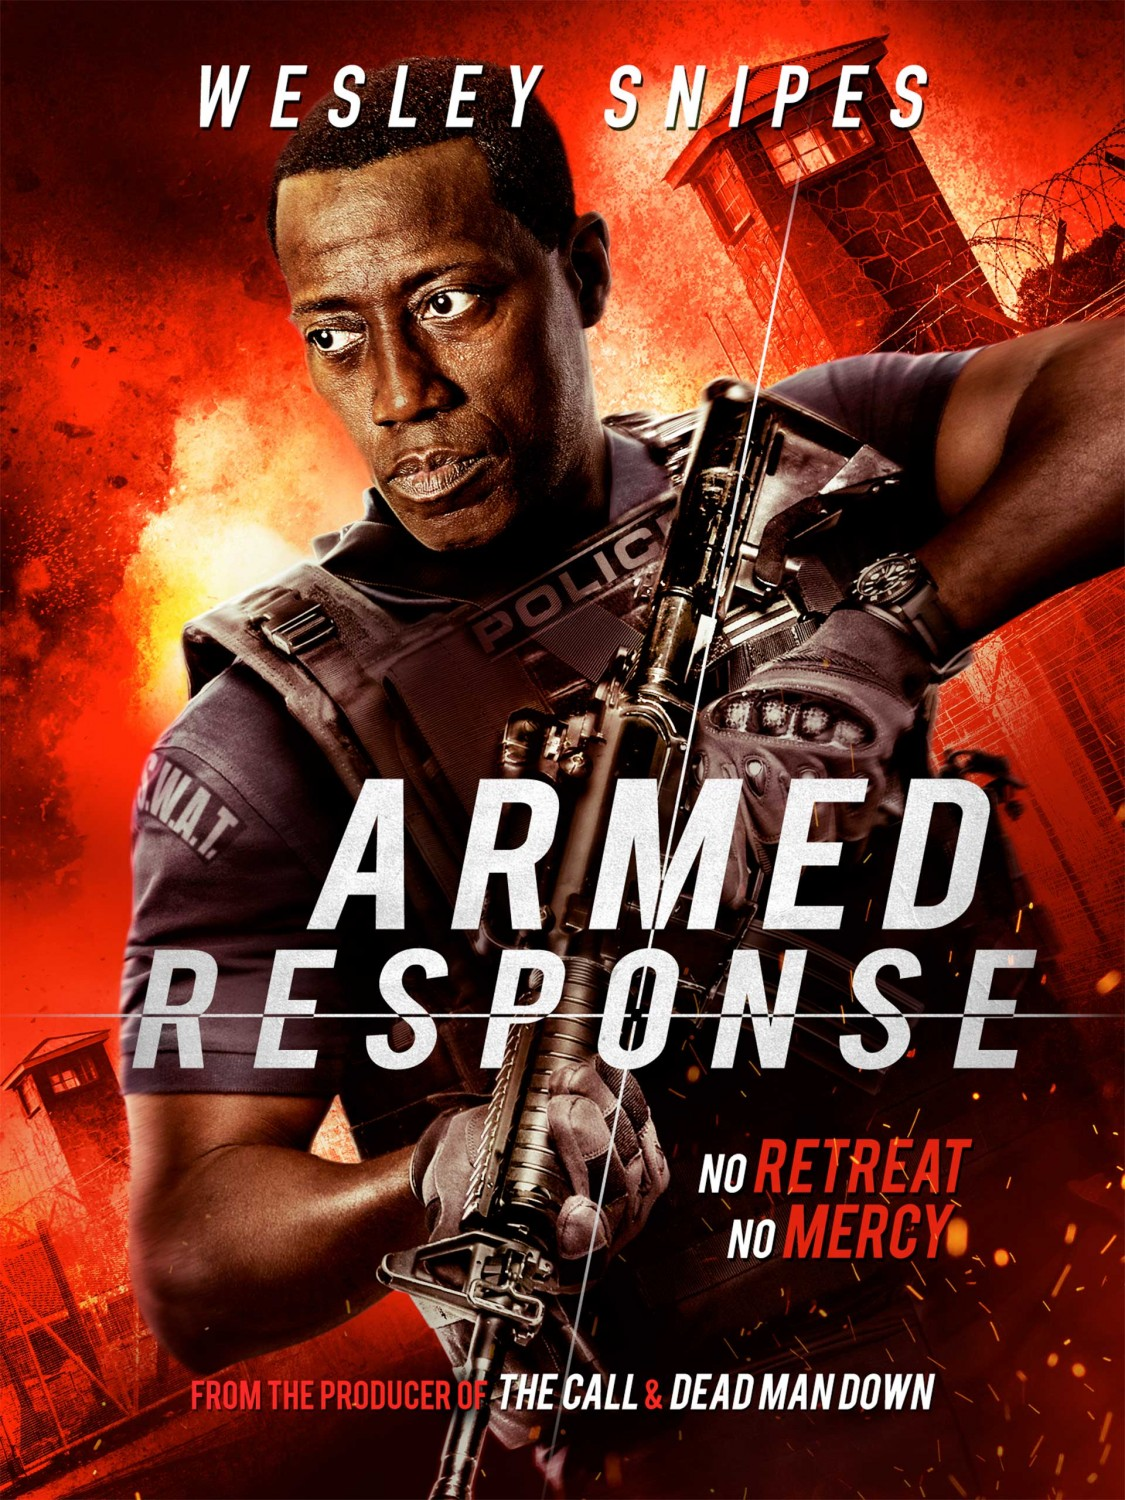 movie response 1 Armed response full movie online for free in hd quality with english subtitles, dutch subtitles.